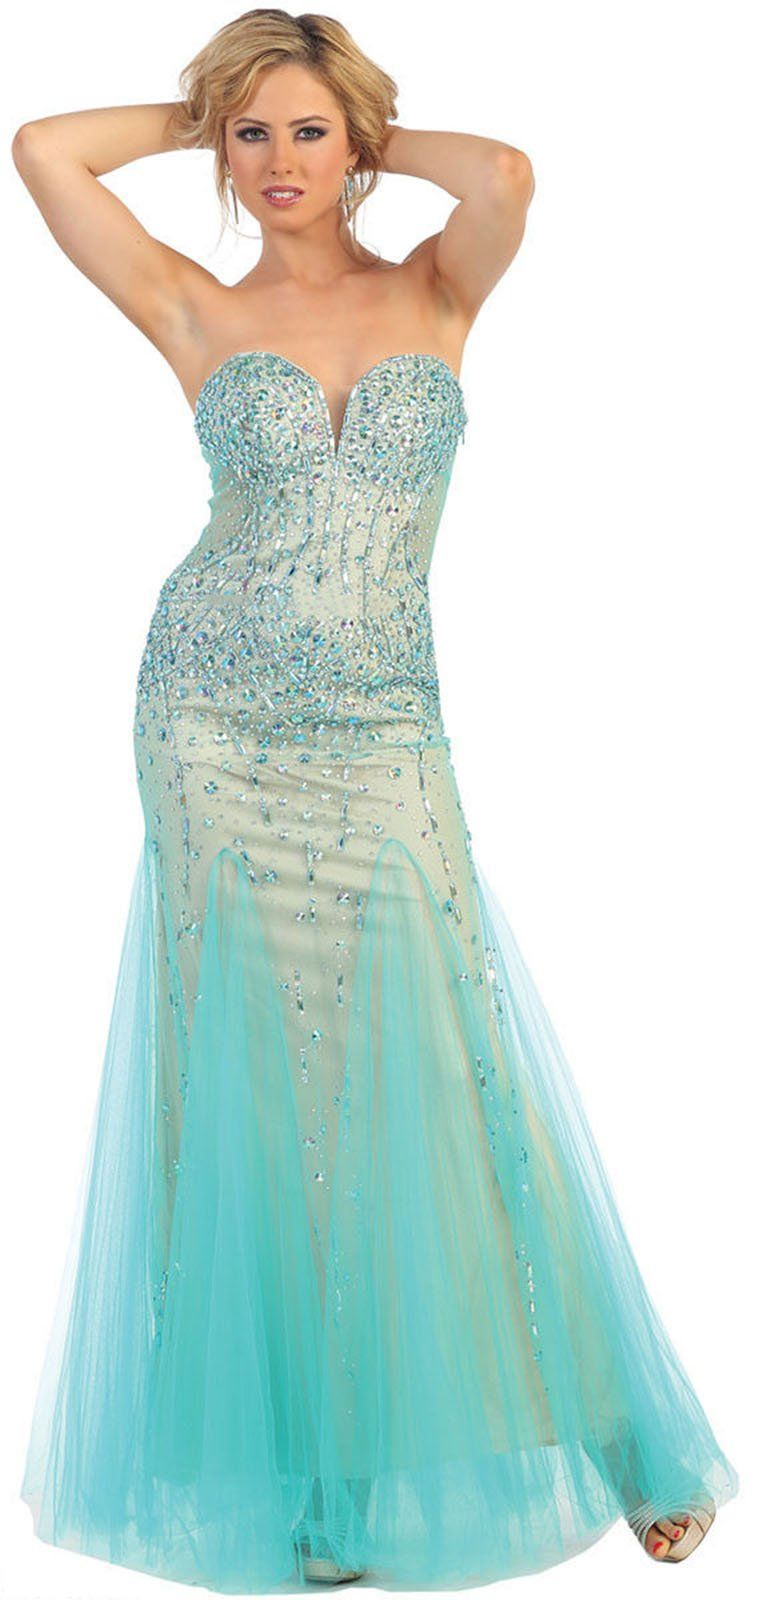 Royal Queen RQ7190 Sweetheart Strapless Prom Dress (12, Black/Nude ...